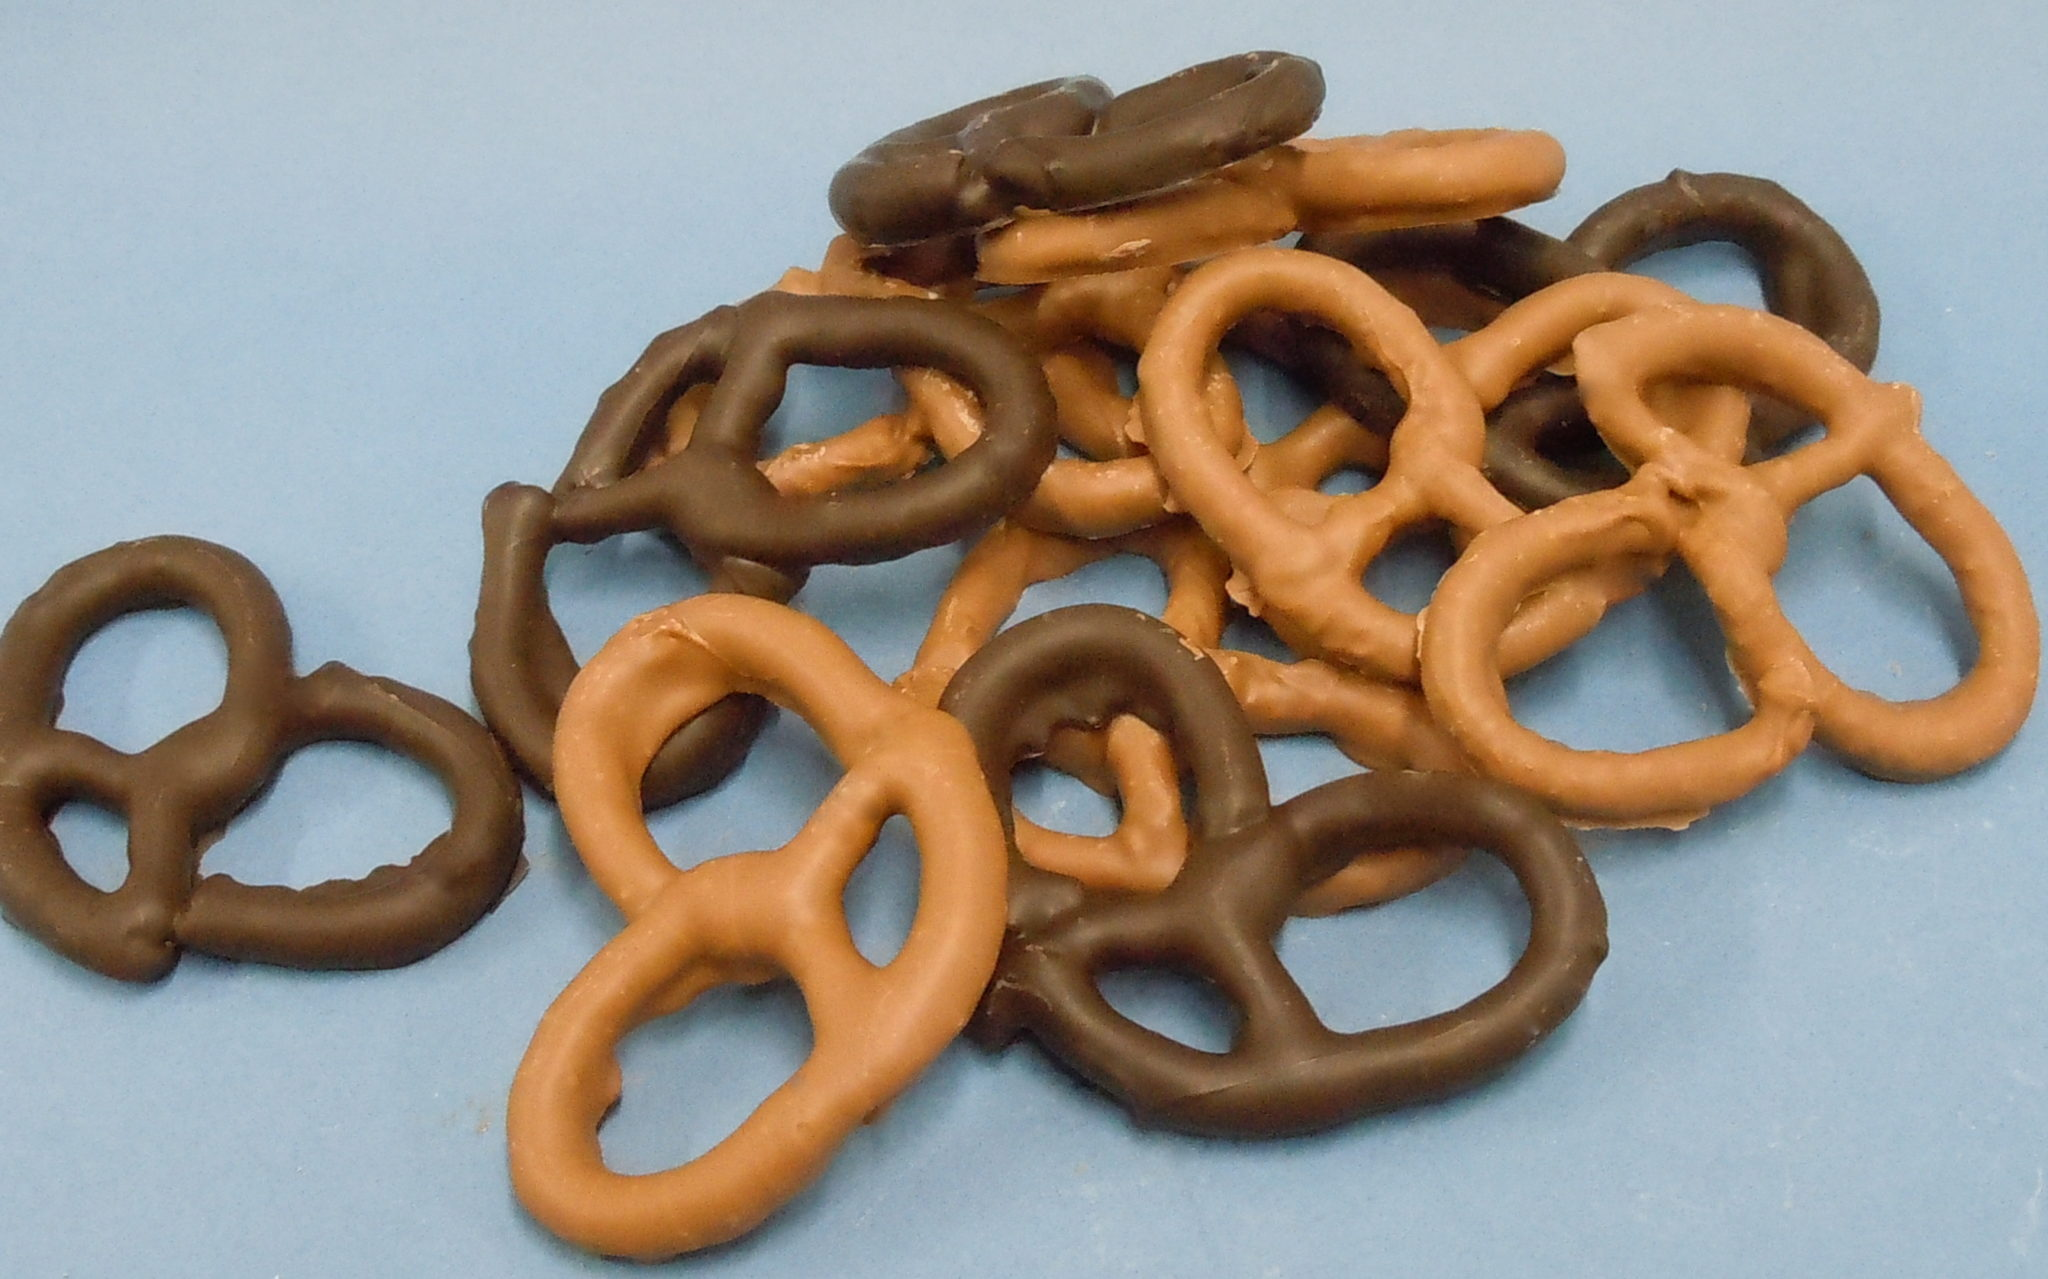 Yummy chocolate covered pretzel rings